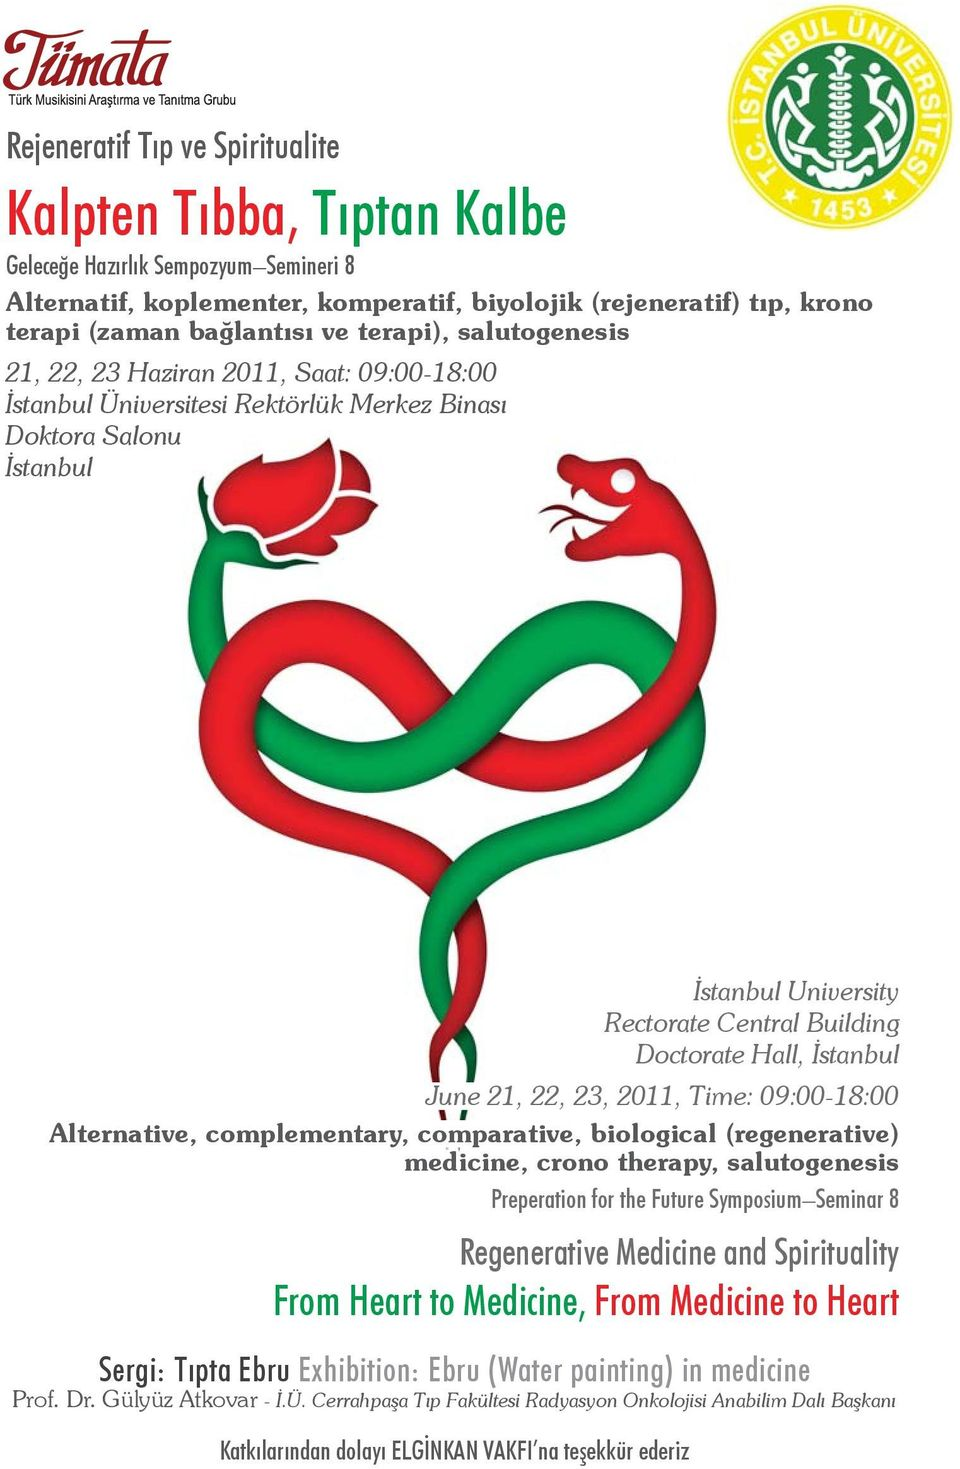 İstanbul June 21, 22, 23, 2011, Time: 09:00-18:00 Alternative, complementary, comparative, biological (regenerative) medicine, crono therapy, salutogenesis Preperation for the Future Symposium